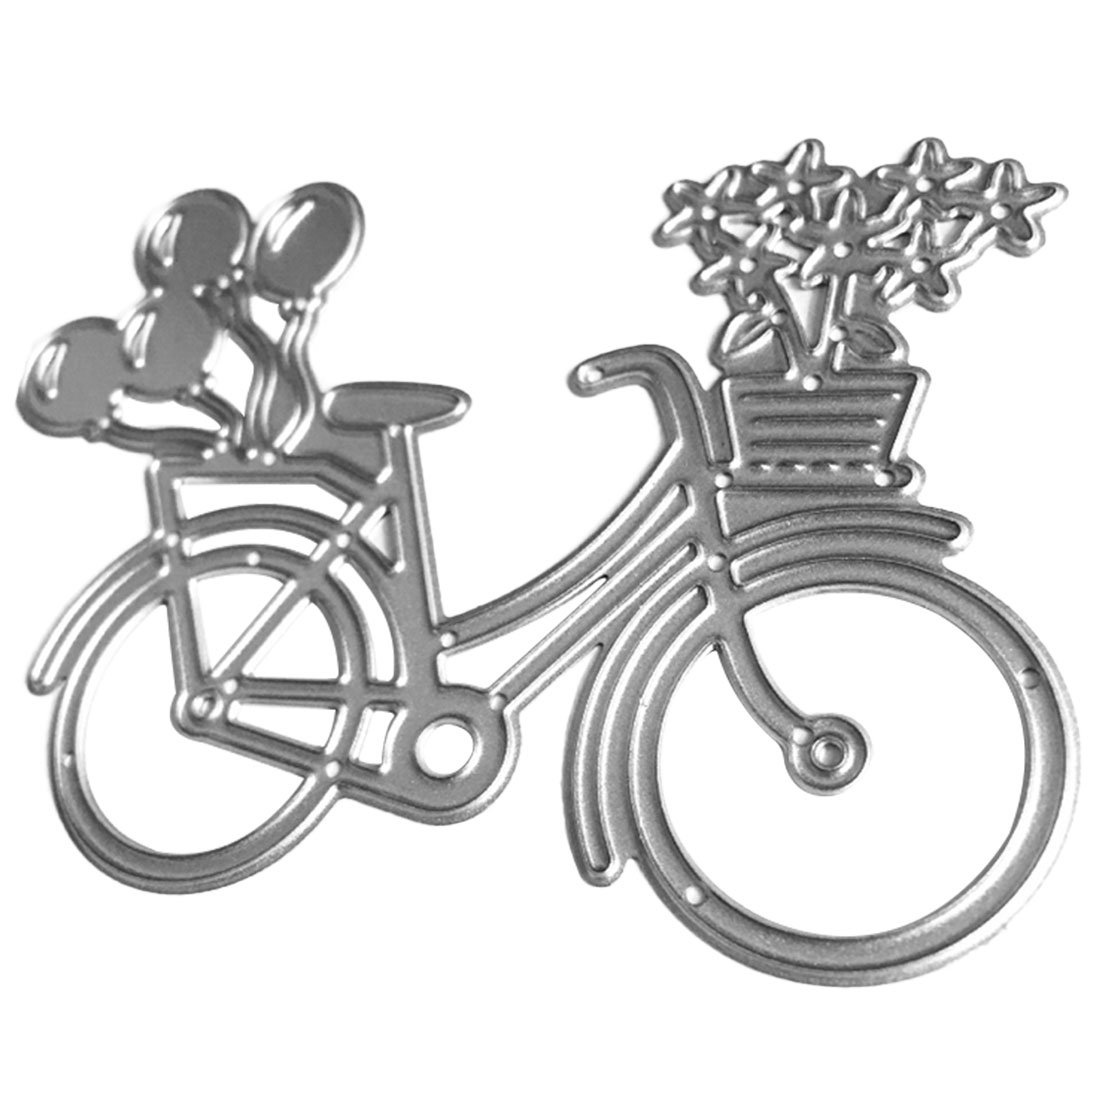 joyliveCY Lovely Bike Bicycle Metal Cutting Dies Stencil Compatible With Wedding Scrapbooking Paper Card Making CY-Buity